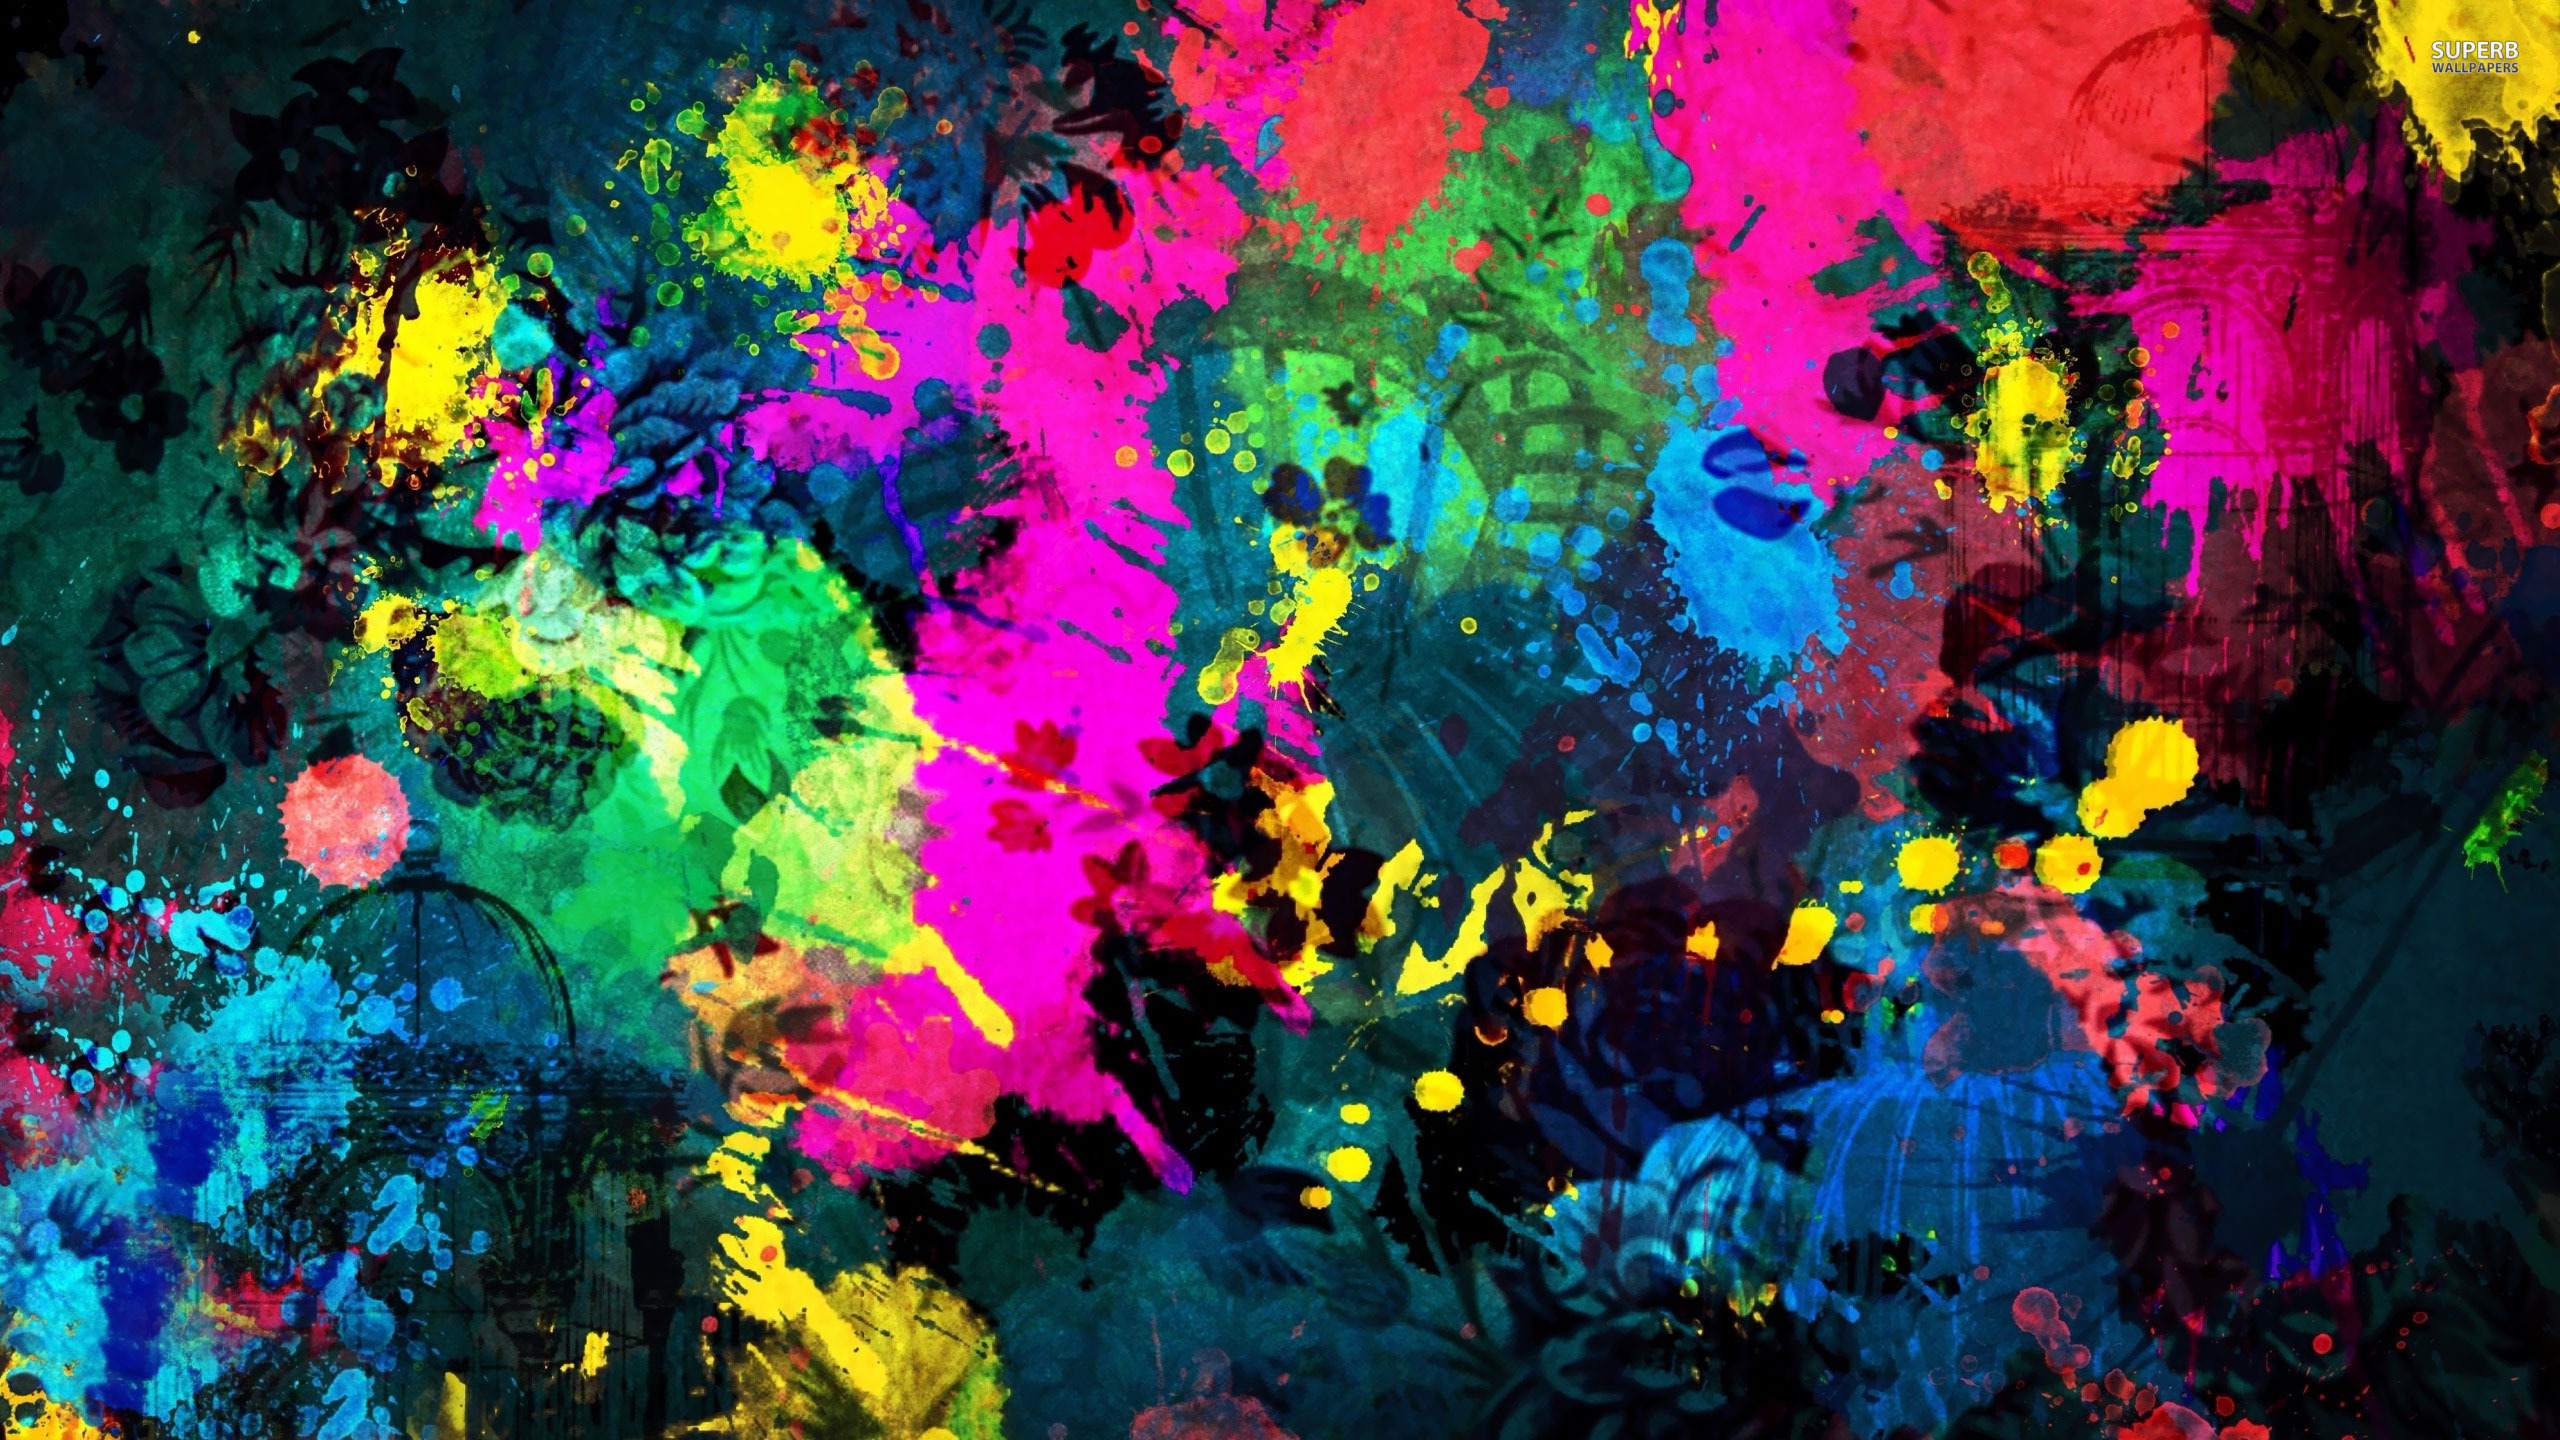 Paint Wallpaper 2560x1440 51289